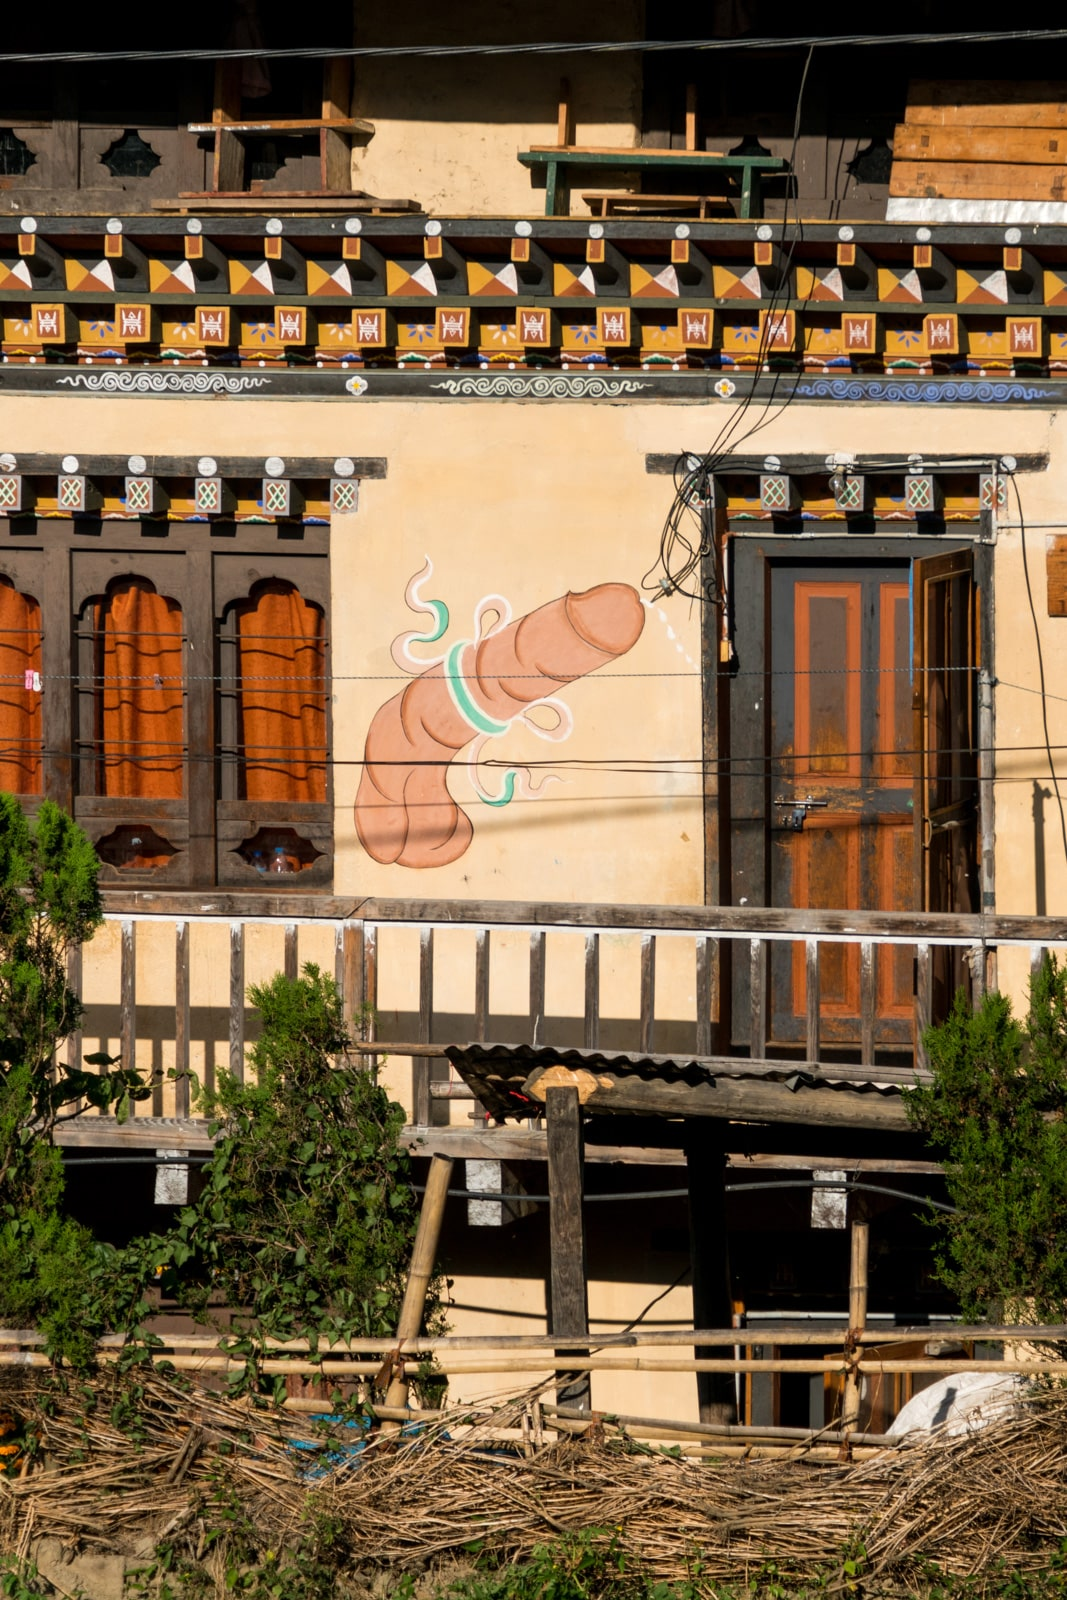 A phallus painted on the side of a house in Bhutan.